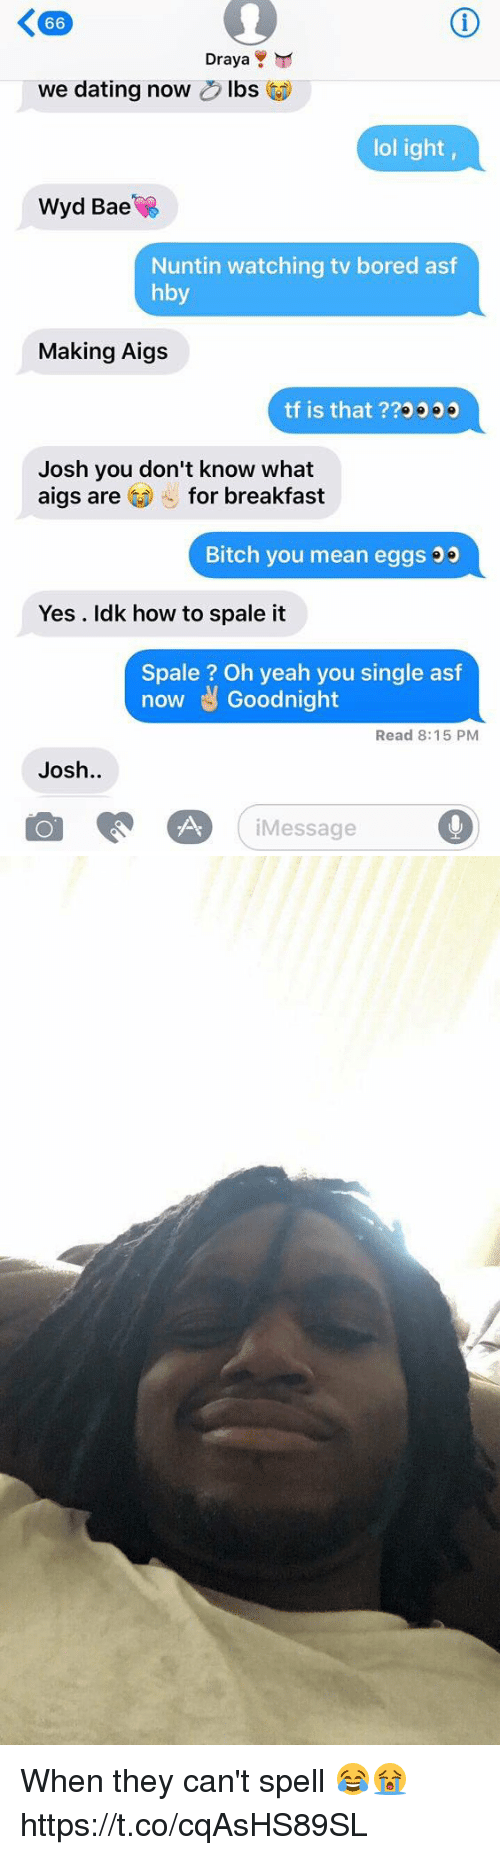 Joshing You: K 66  Draya  Y  we dating now  bs  lol ight,  Wyd Bae  Nuntin watching tv bored asf  hby  Making Aigs  tf is that ??o  Josh you don't know what  aigs are  for breakfast  Bitch you mean eggs  Yes Idk how to spale it  Spale Oh yeah you single asf  now t Goodnight  Read 8:15 PM  Josh  Message When they can't spell 😂😭 https://t.co/cqAsHS89SL